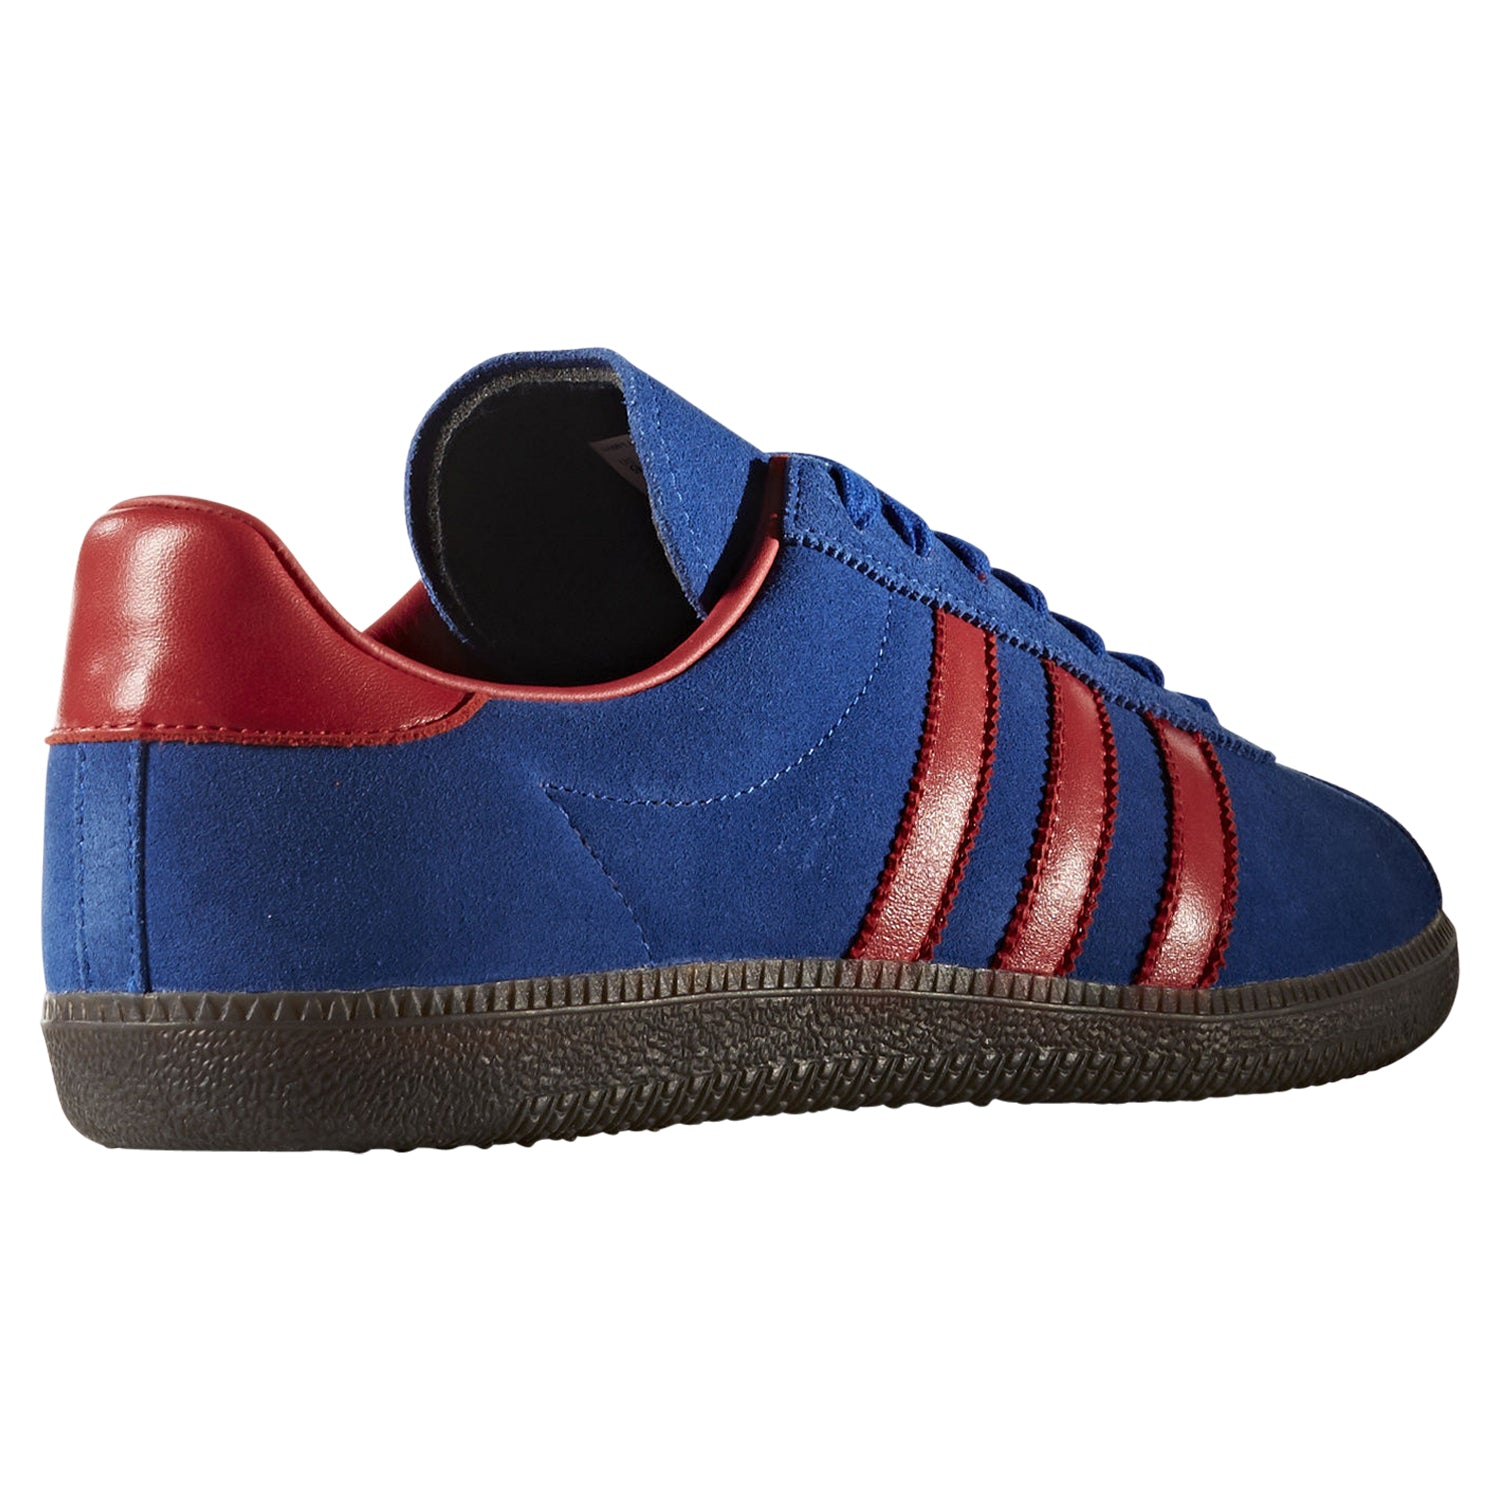 best cheap b85b4 fba9a tradesports.co.uk adidas Originals Men s Spiritus SPZL Trainers - Blue ...